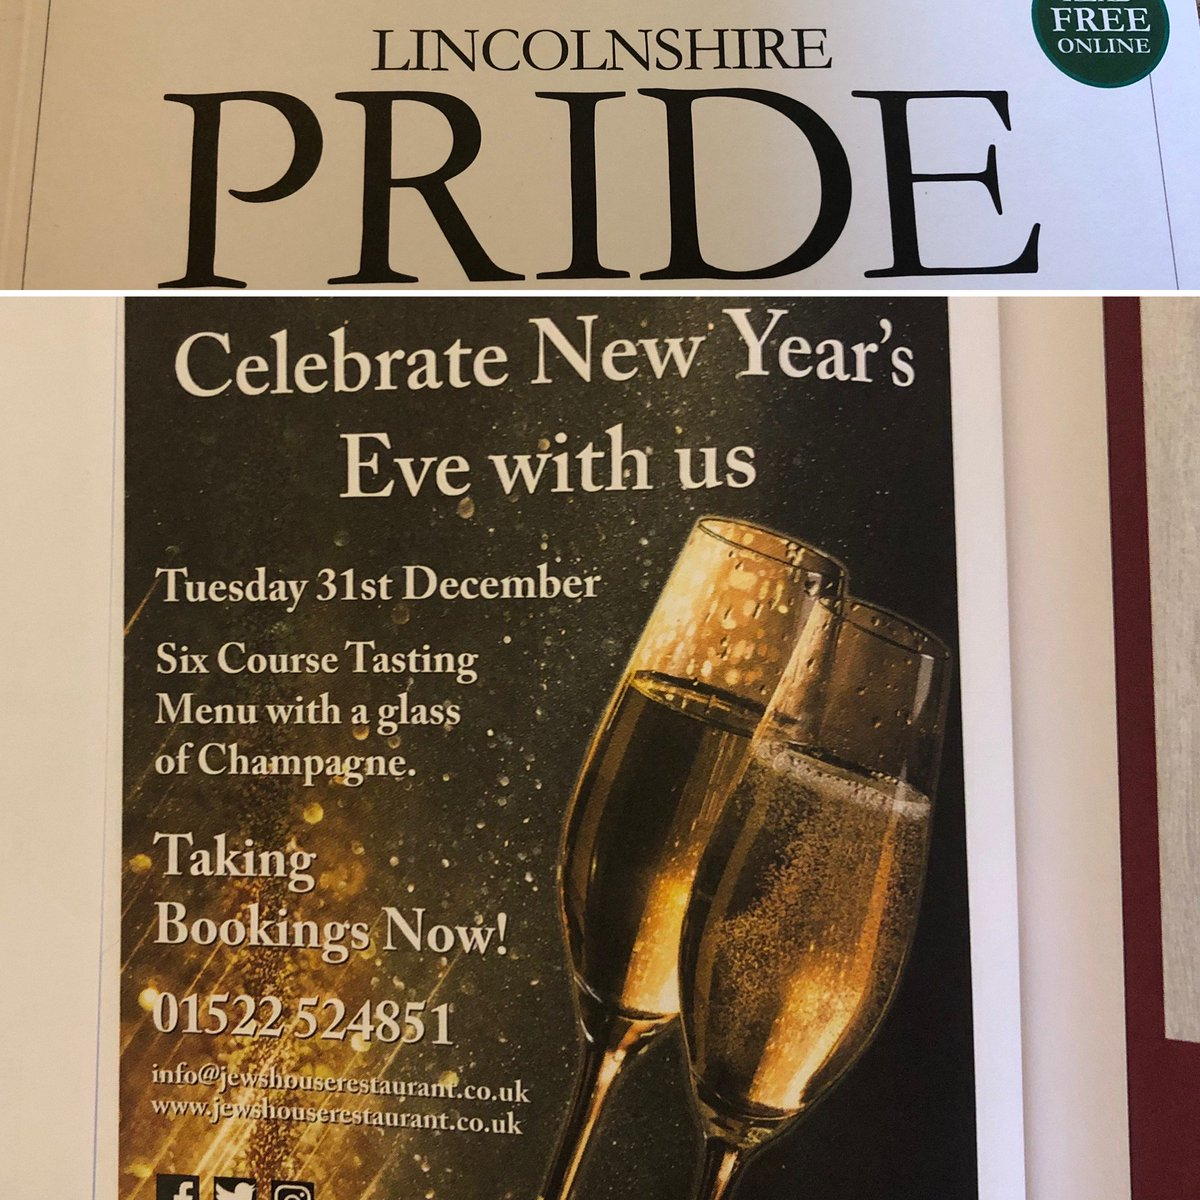 It's now out! #lincolnshirepride - we are now taking New Years Eve bookings #newyearseve #celebrate with us<br>http://pic.twitter.com/w9acoiggci